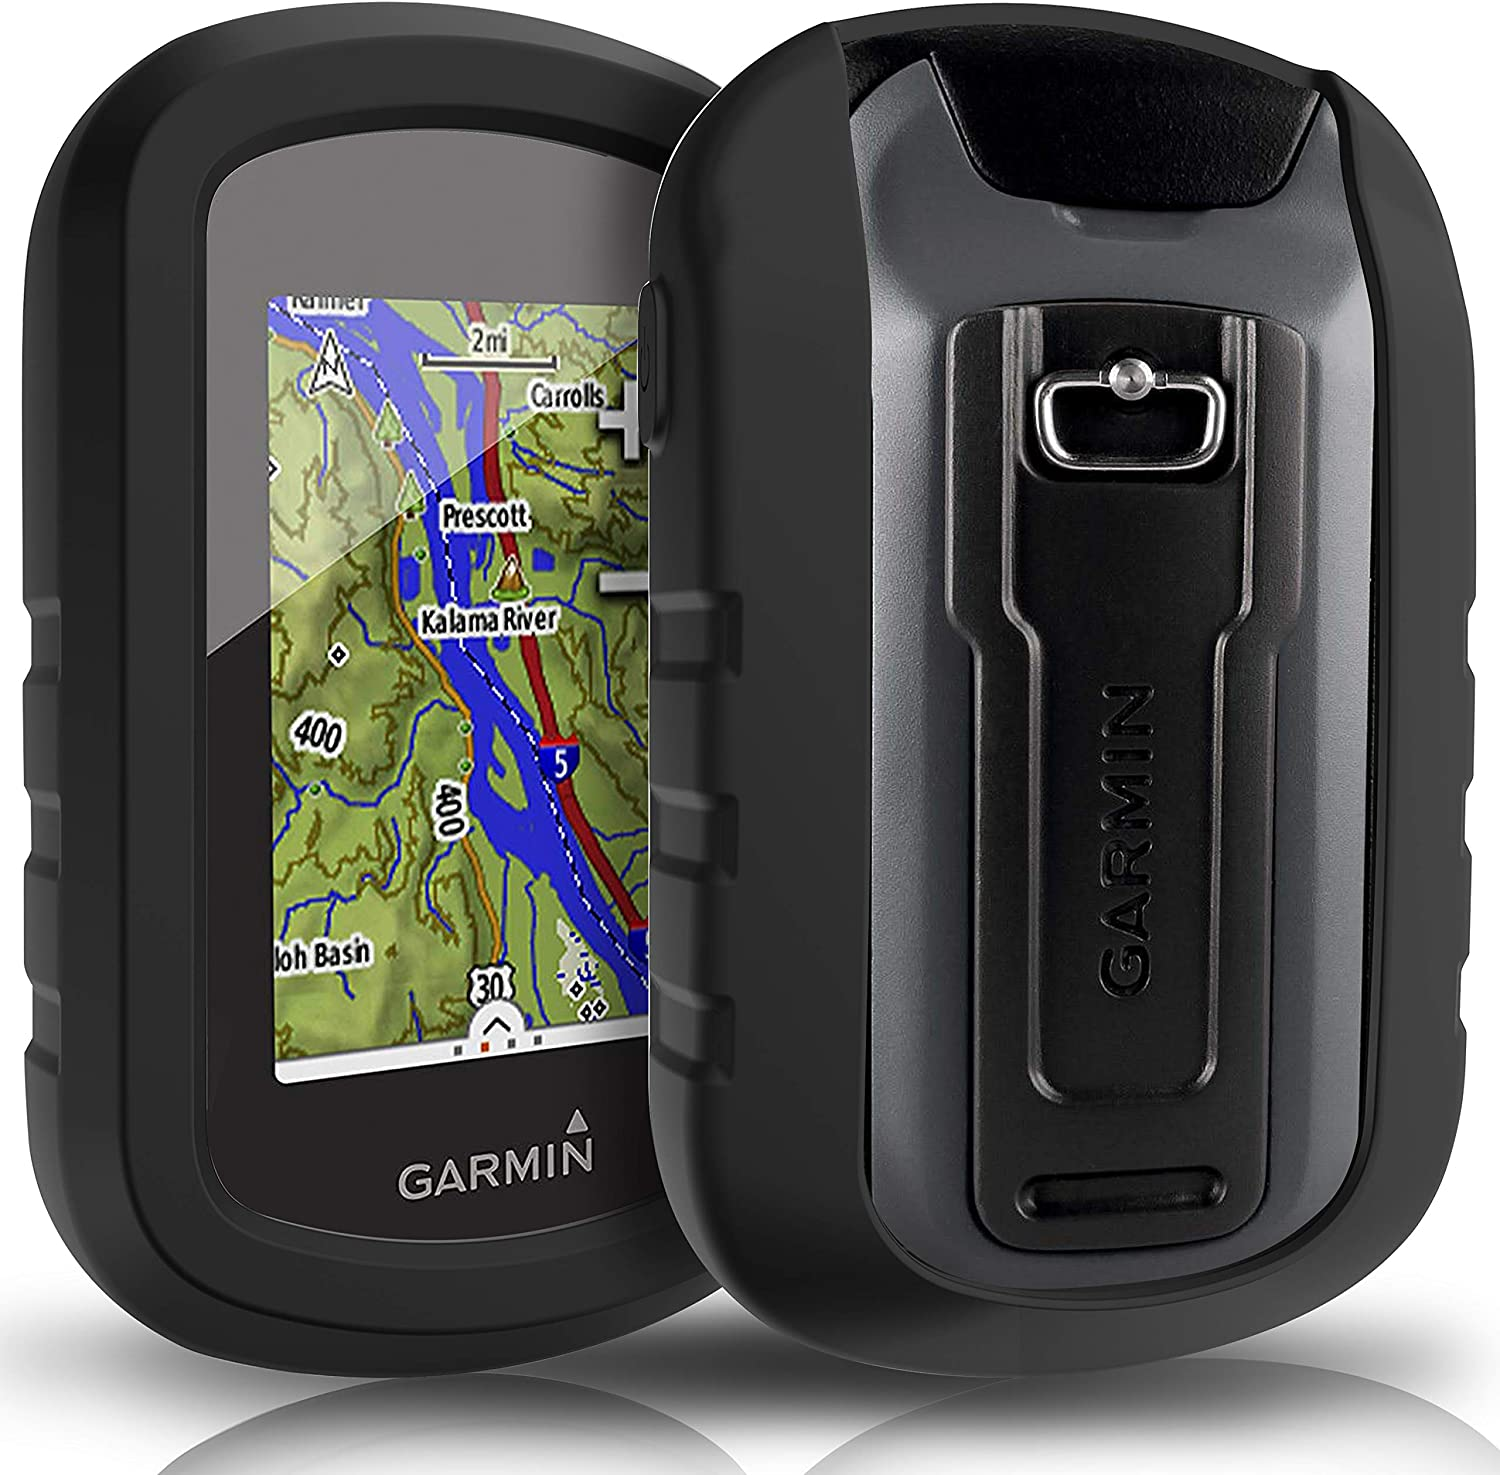 TUSITA Case for Garmin eTrex Touch 25 35 35t - Silicone Protective Cover - Handheld GPS Navigator Accessories (Black)